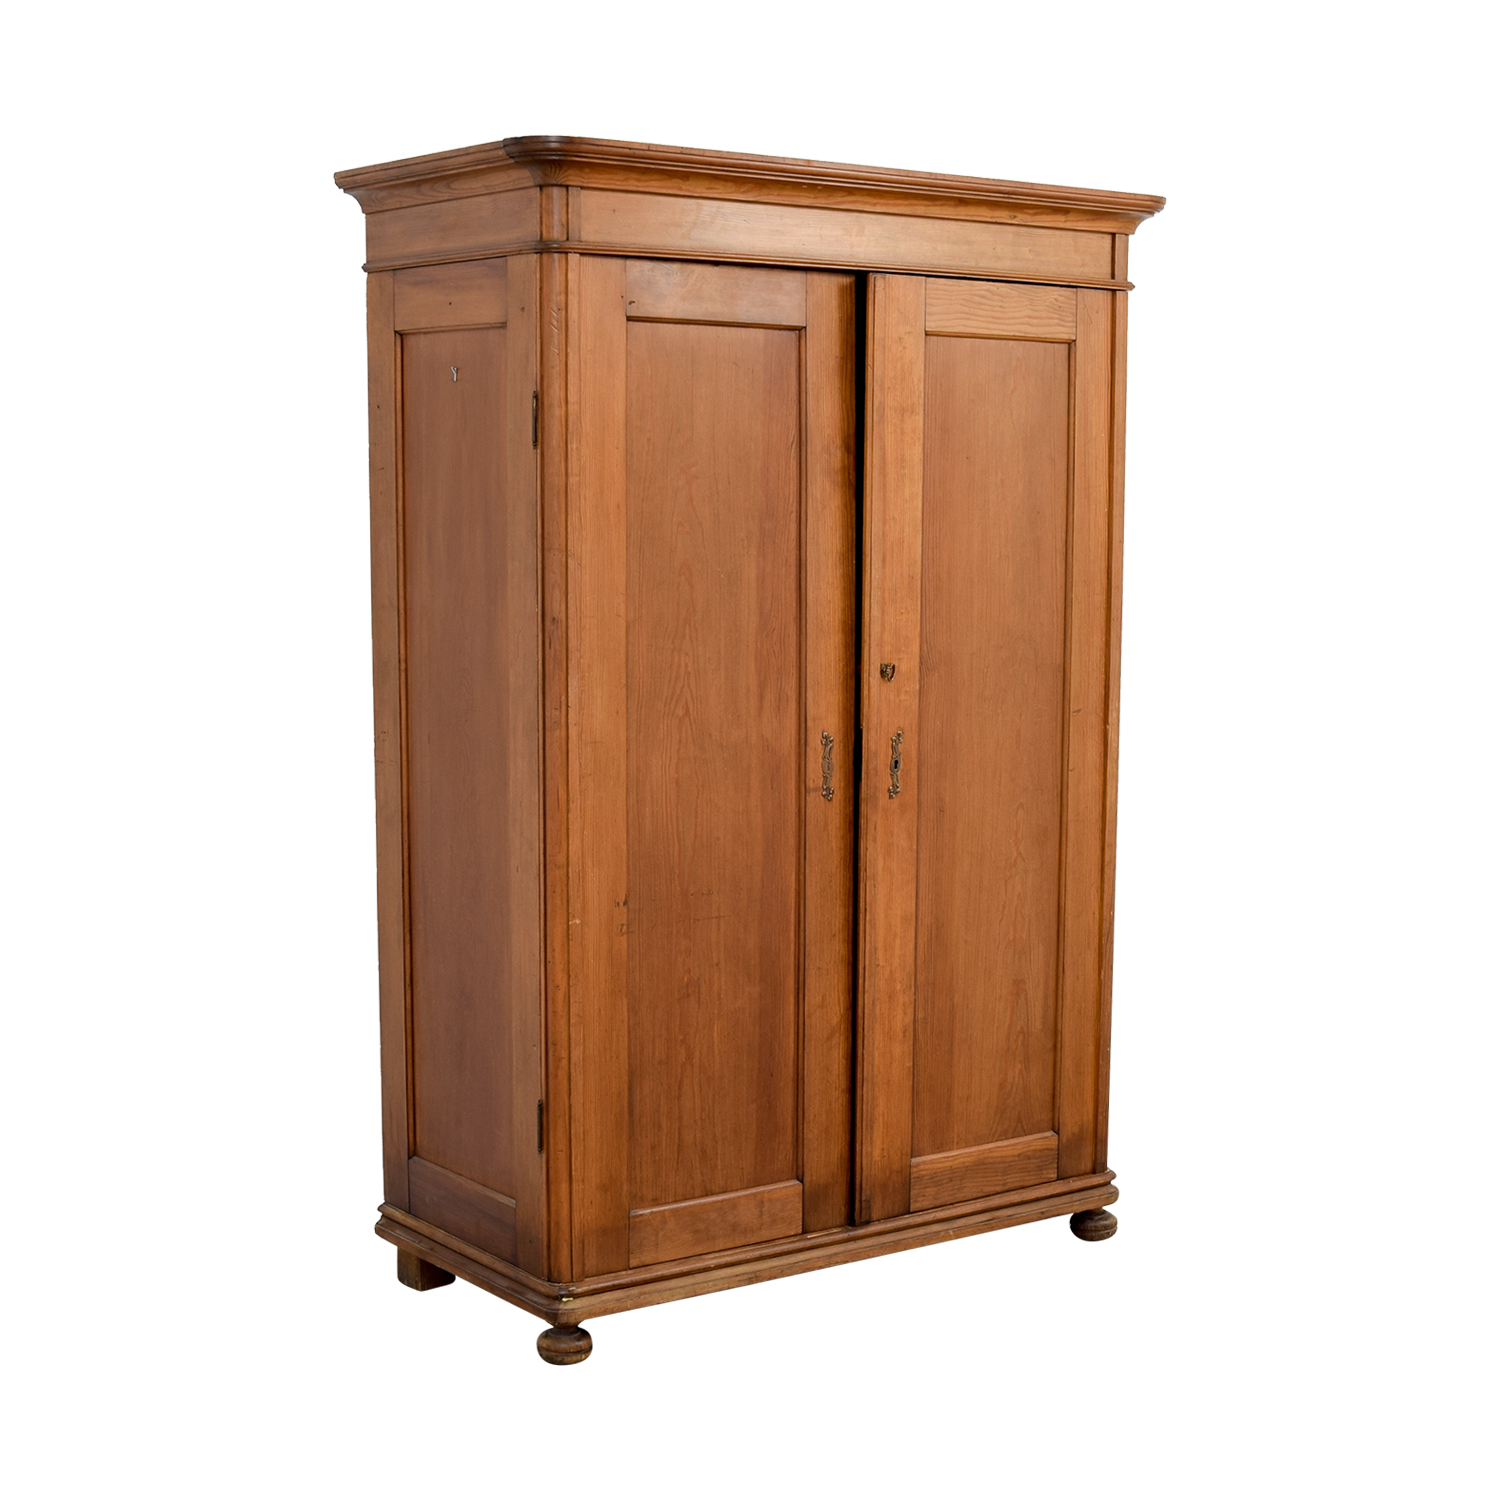 Wardrobes & Armoires: Used Wardrobes & Armoires for sale